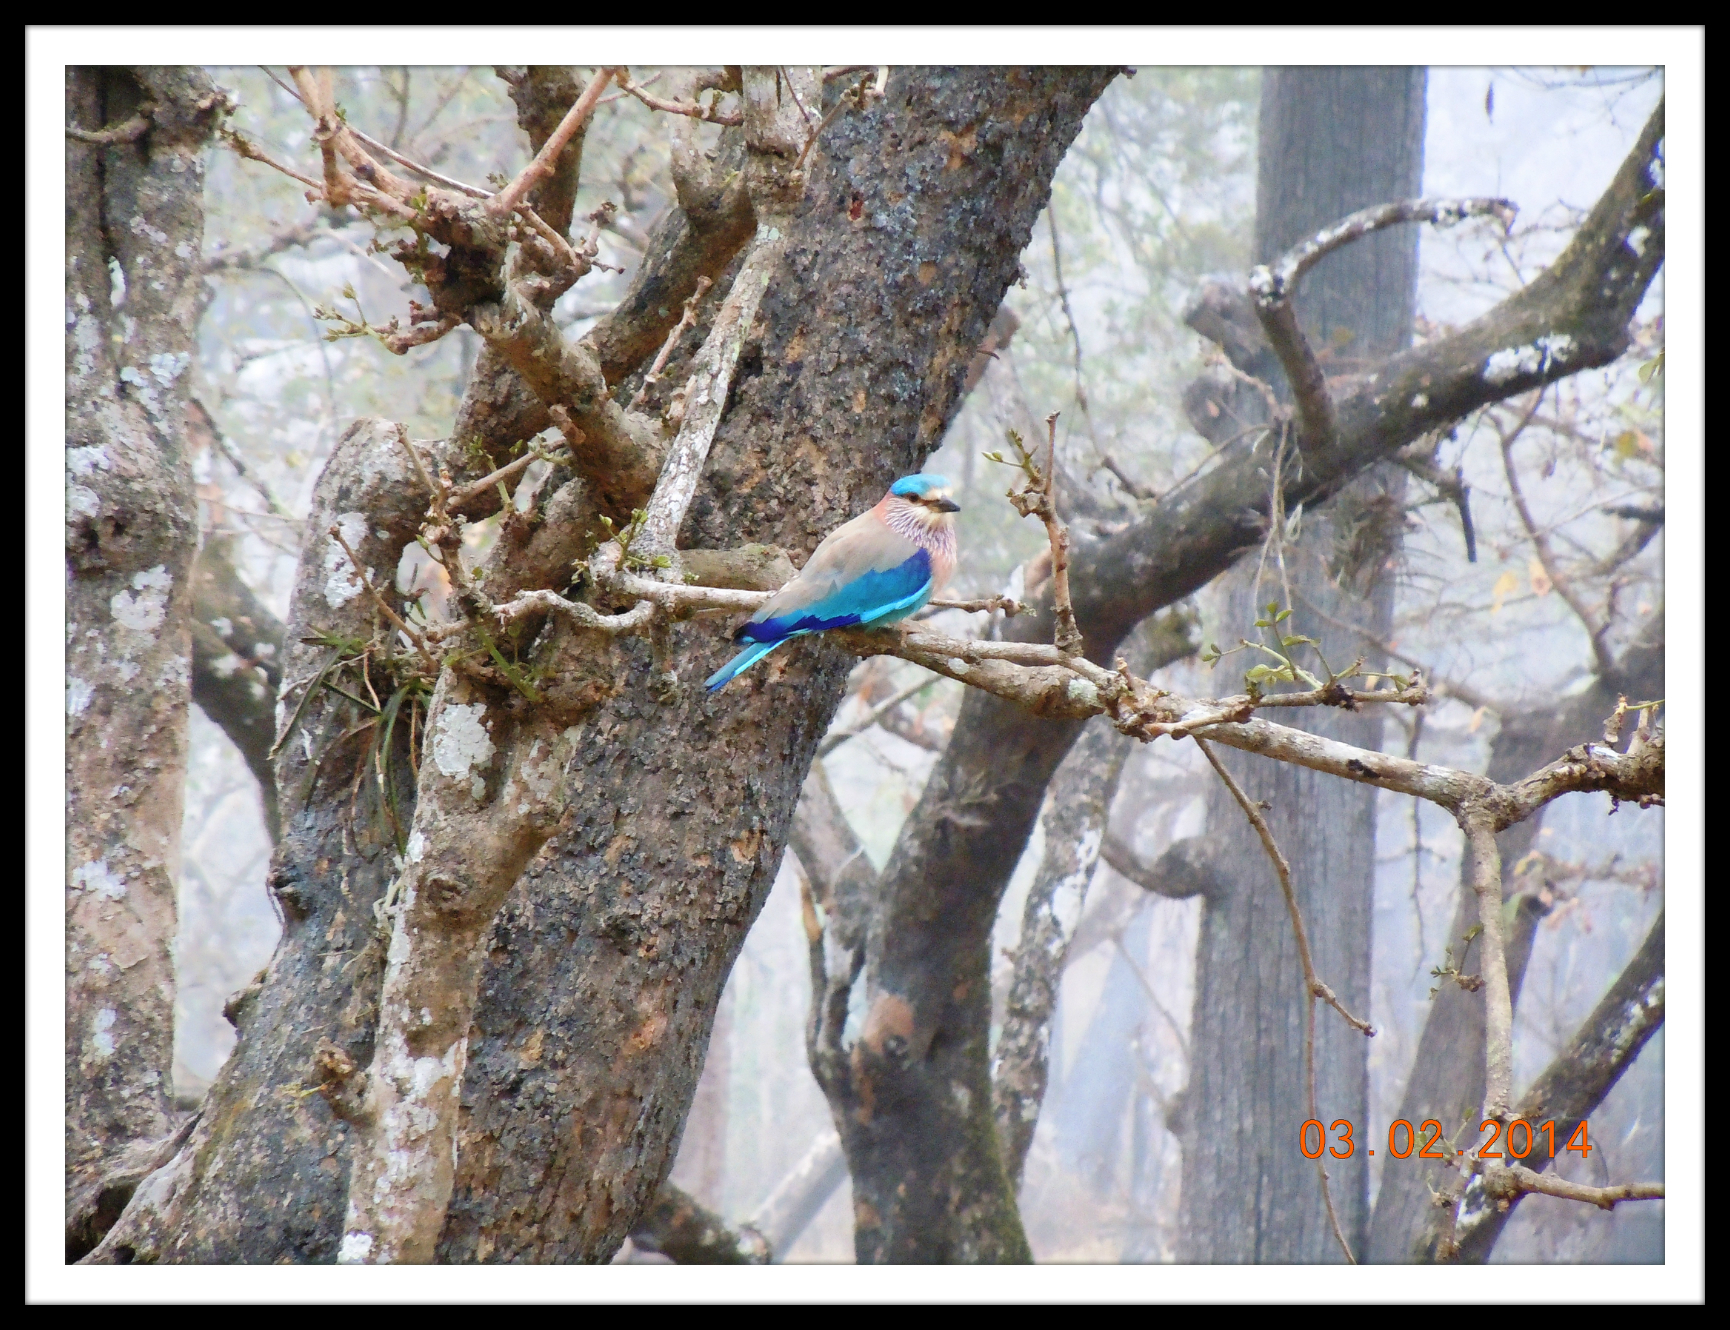 A Blue Jay in Wayanad